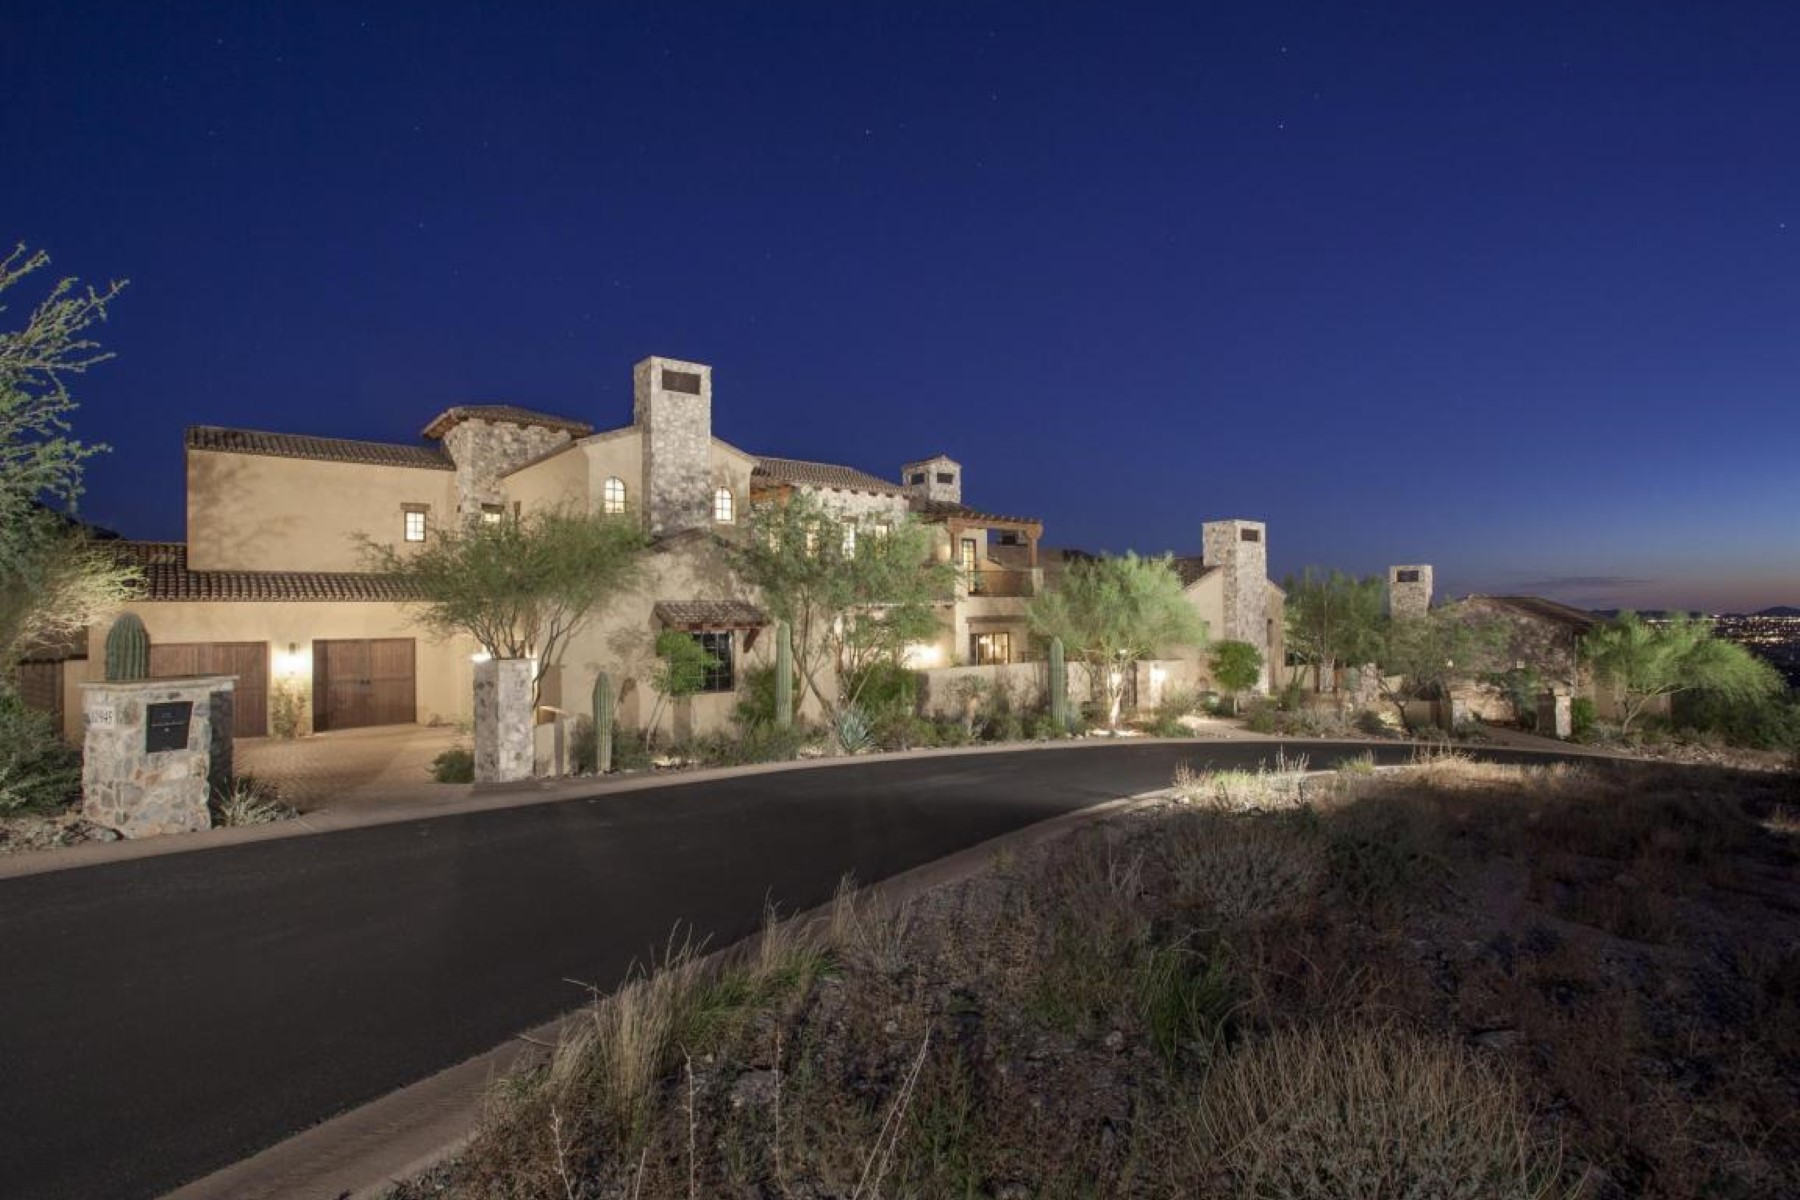 단독 가정 주택 용 매매 에 1.68 acres in Silverleaf's Upper Canyon 10945 E Whistling Wind Way #1910 Scottsdale, 아리조나, 85255 미국